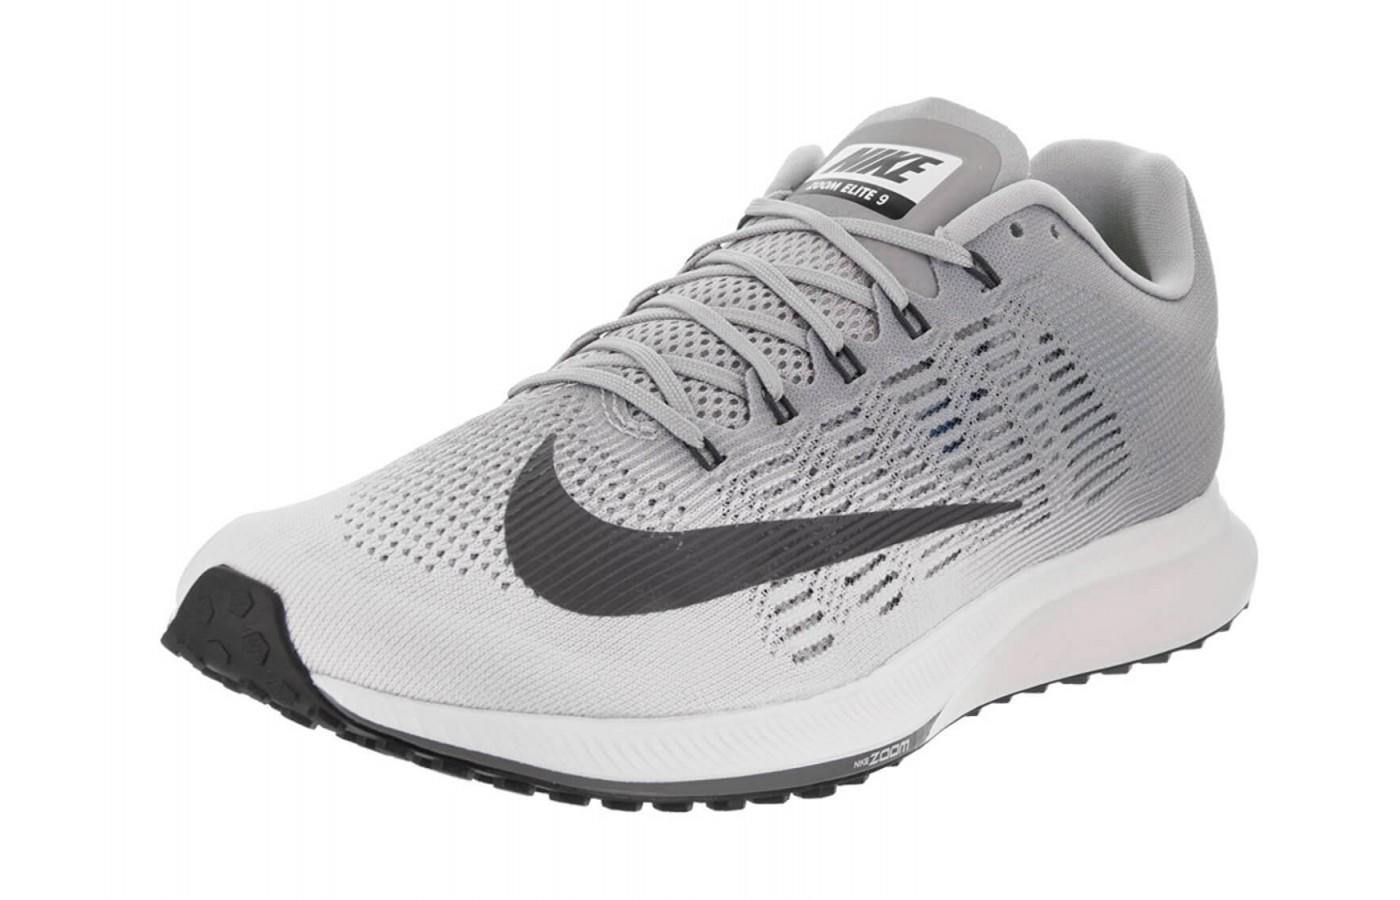 The Nike Air Zoom Elite 9 features a Flymesh technology upper.